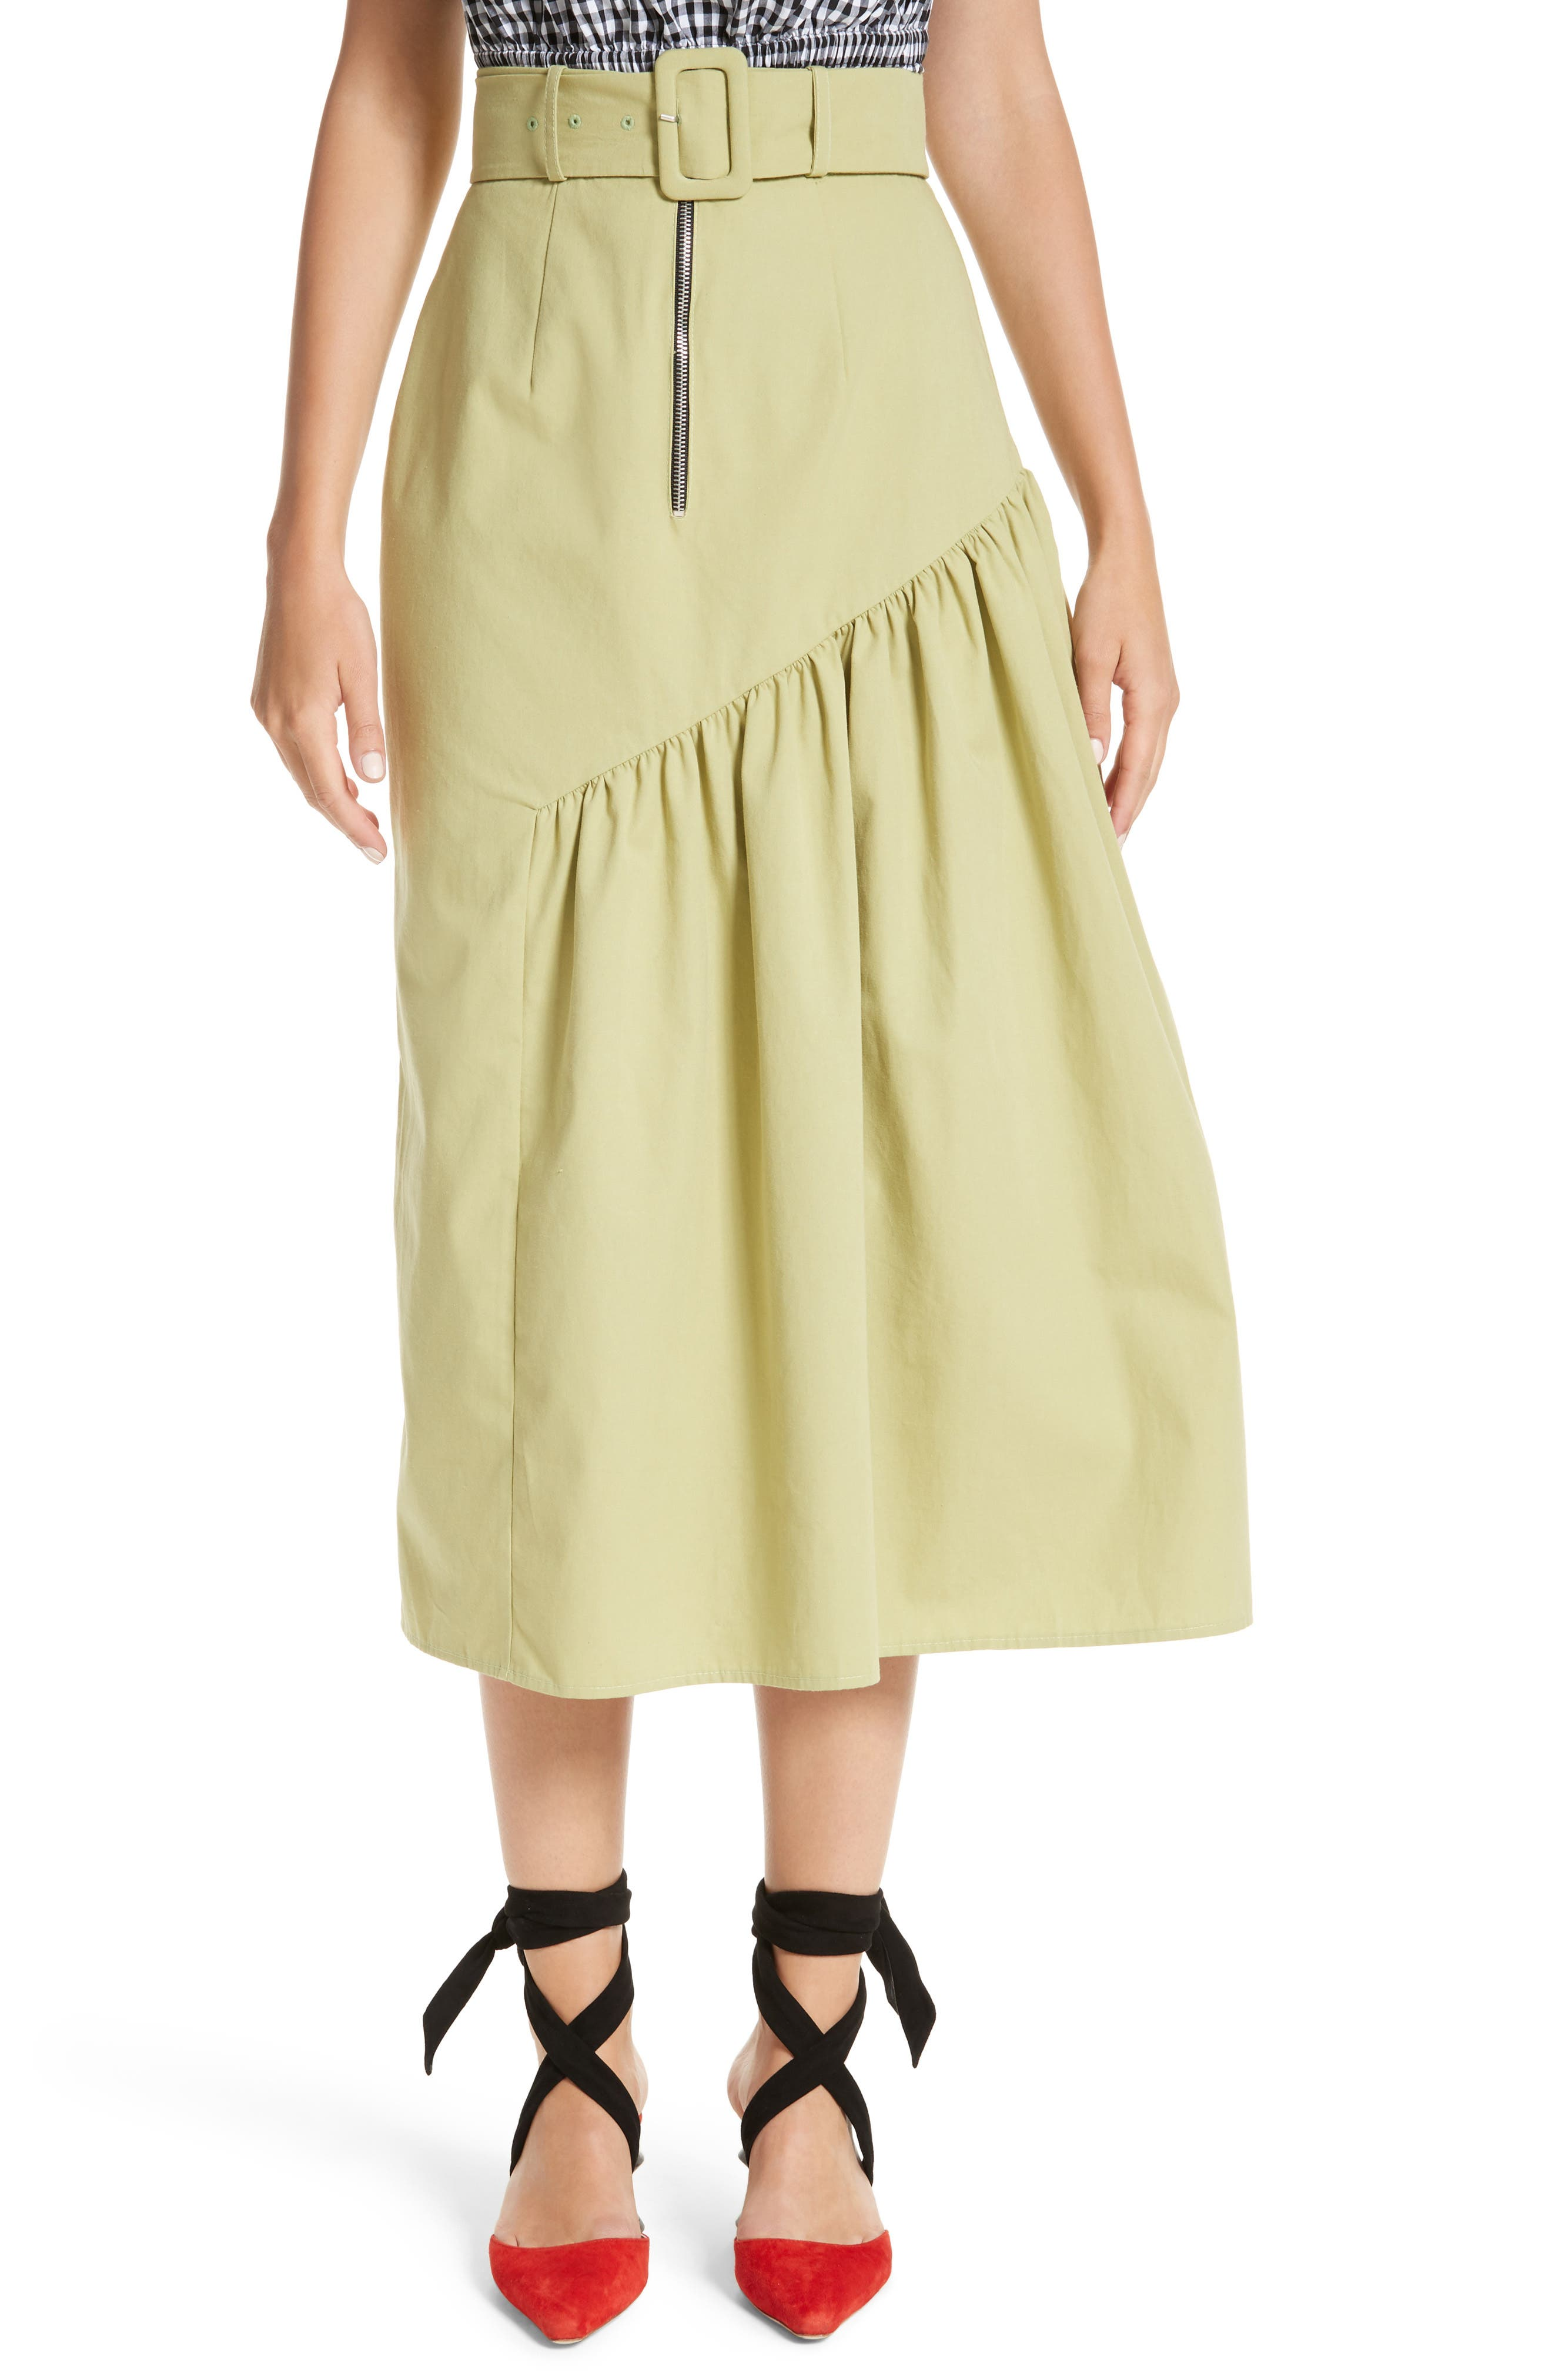 Belted High Waist Ruffle Skirt,                             Main thumbnail 1, color,                             Cotton Sage Green